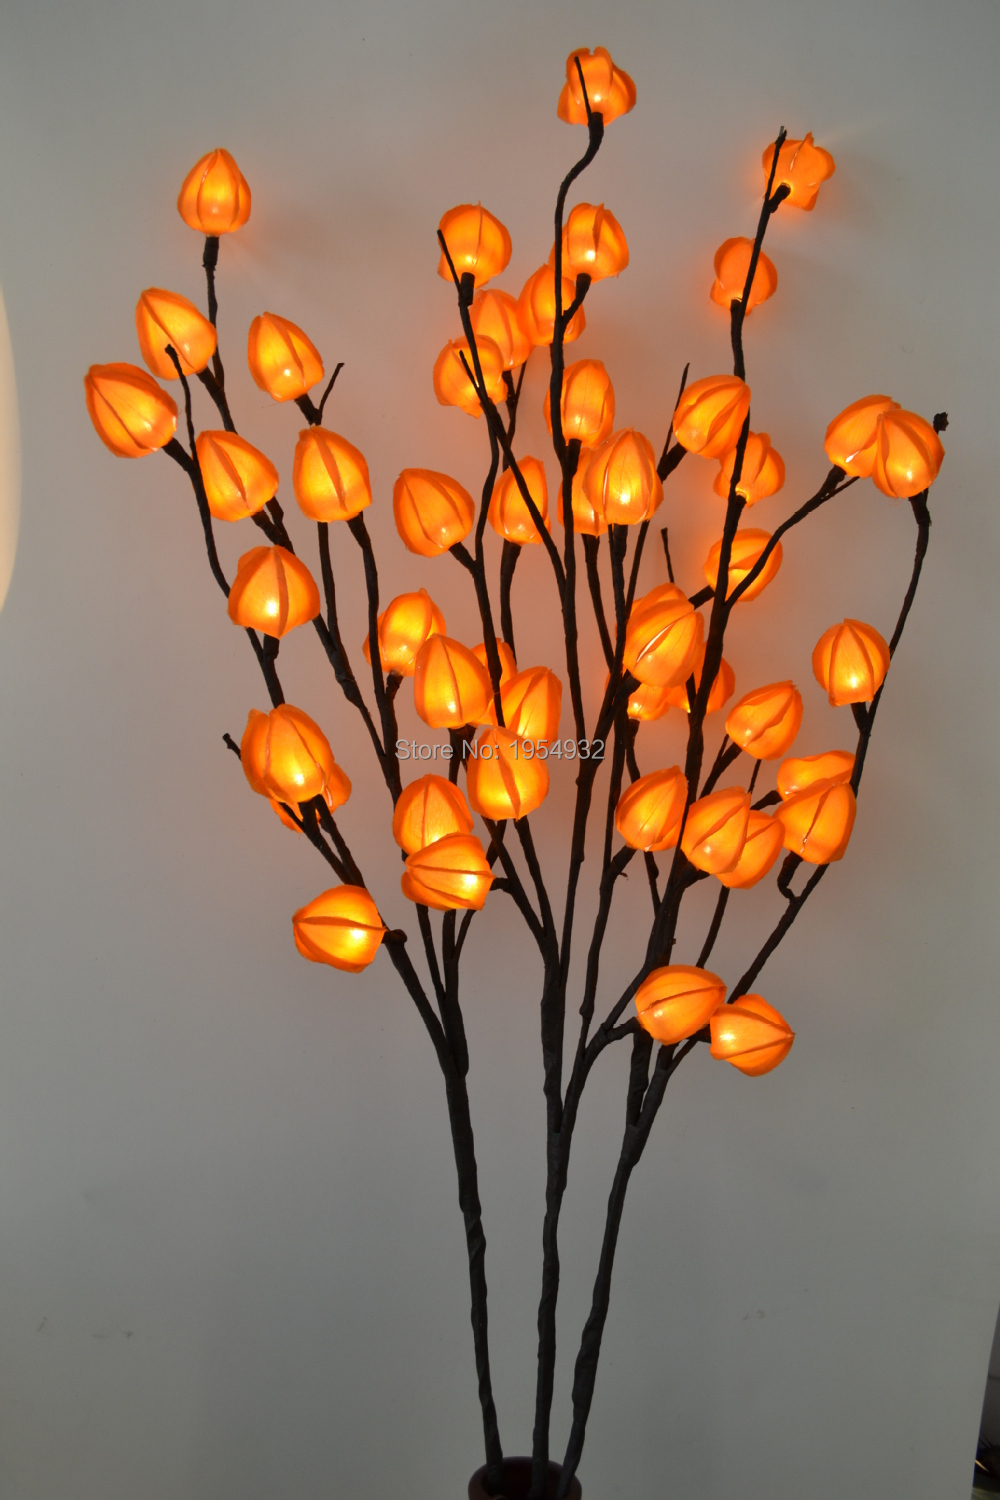 40 Height With 48 Led Electric Type Chinese Lantern Branch Lights 3 Color To Coice Living Room Decoration